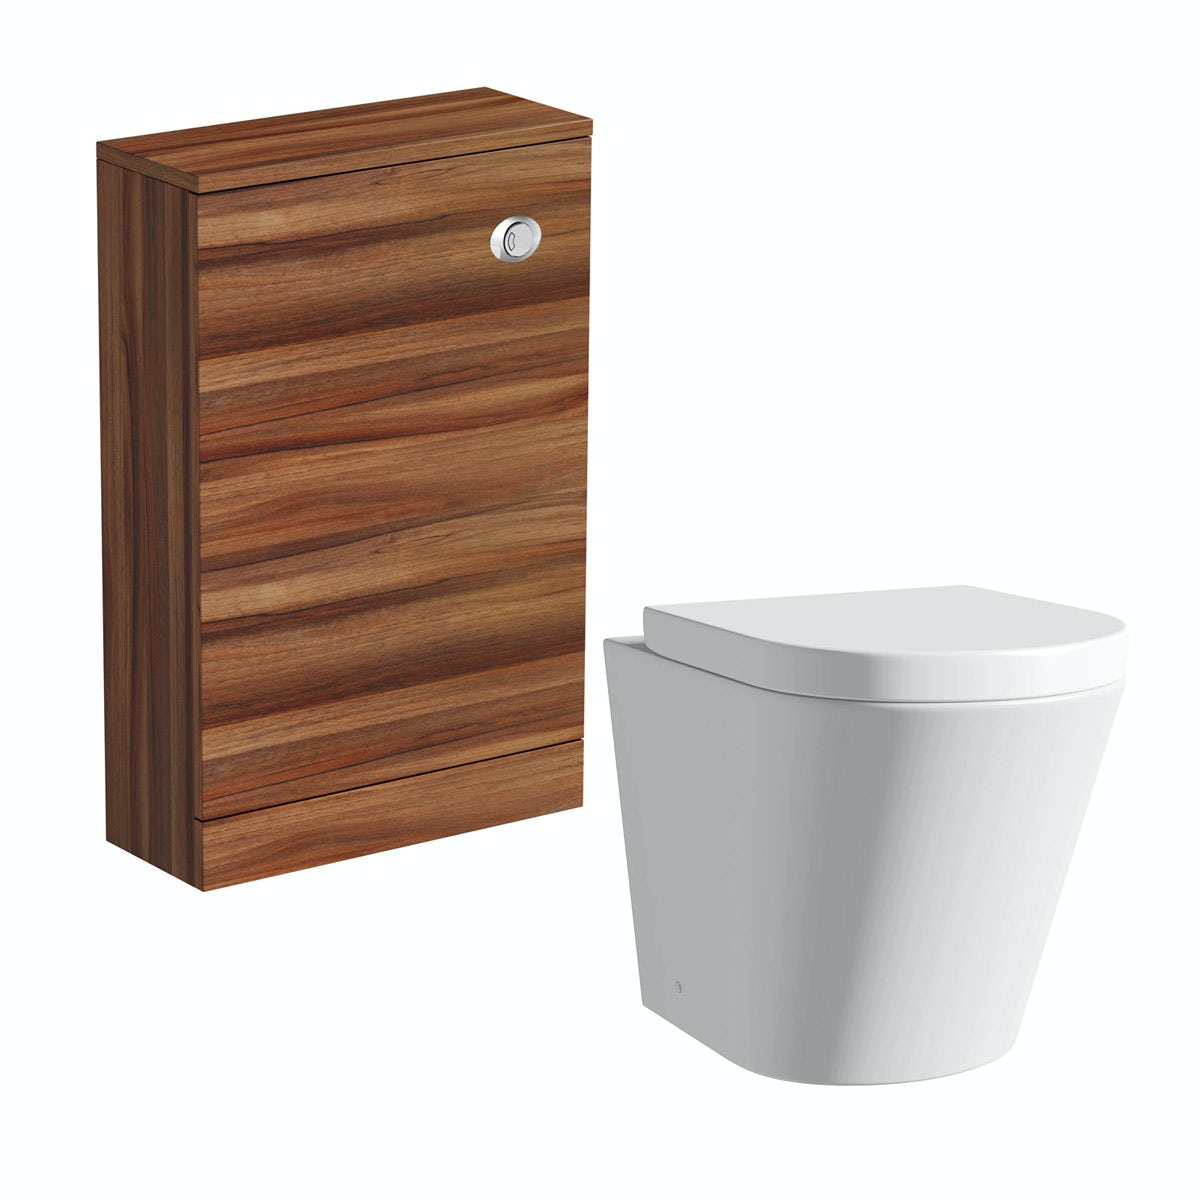 Clarity walnut back to wall toilet unit with  contemporary toilet and seat